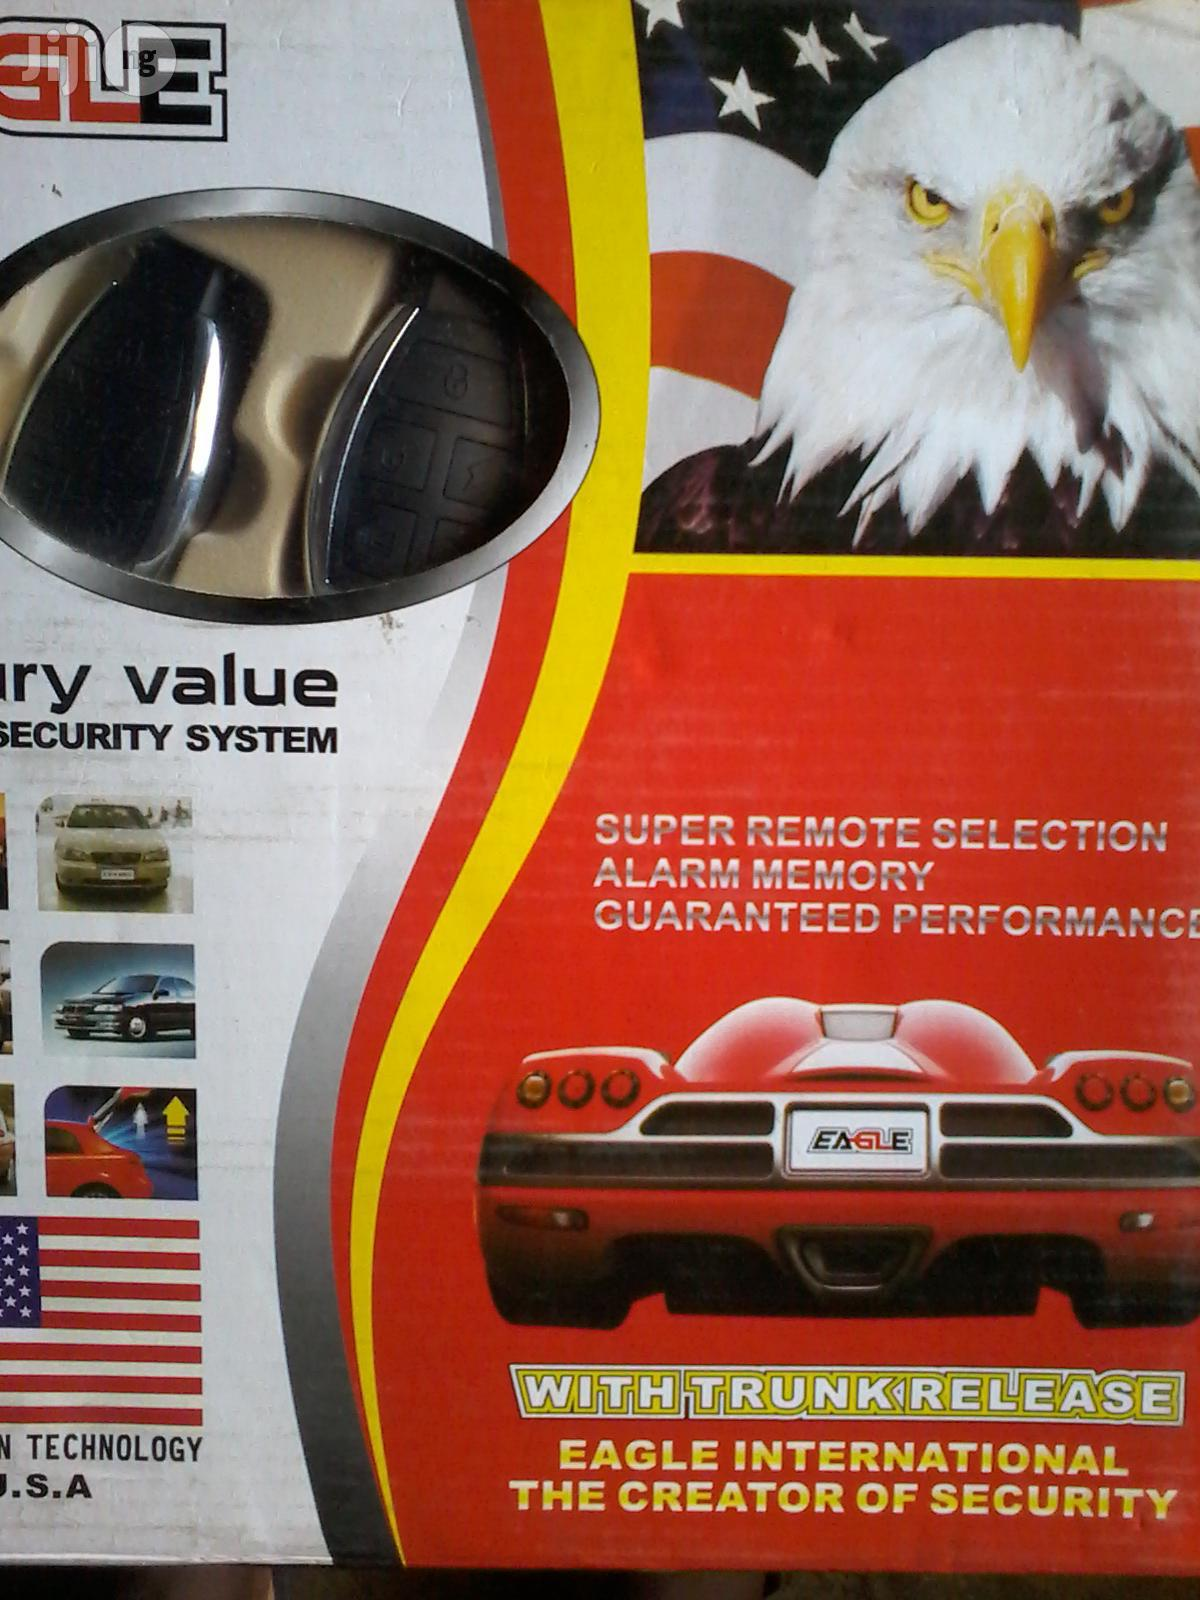 Eagle Super Remote Selection Alarm Memory Security System